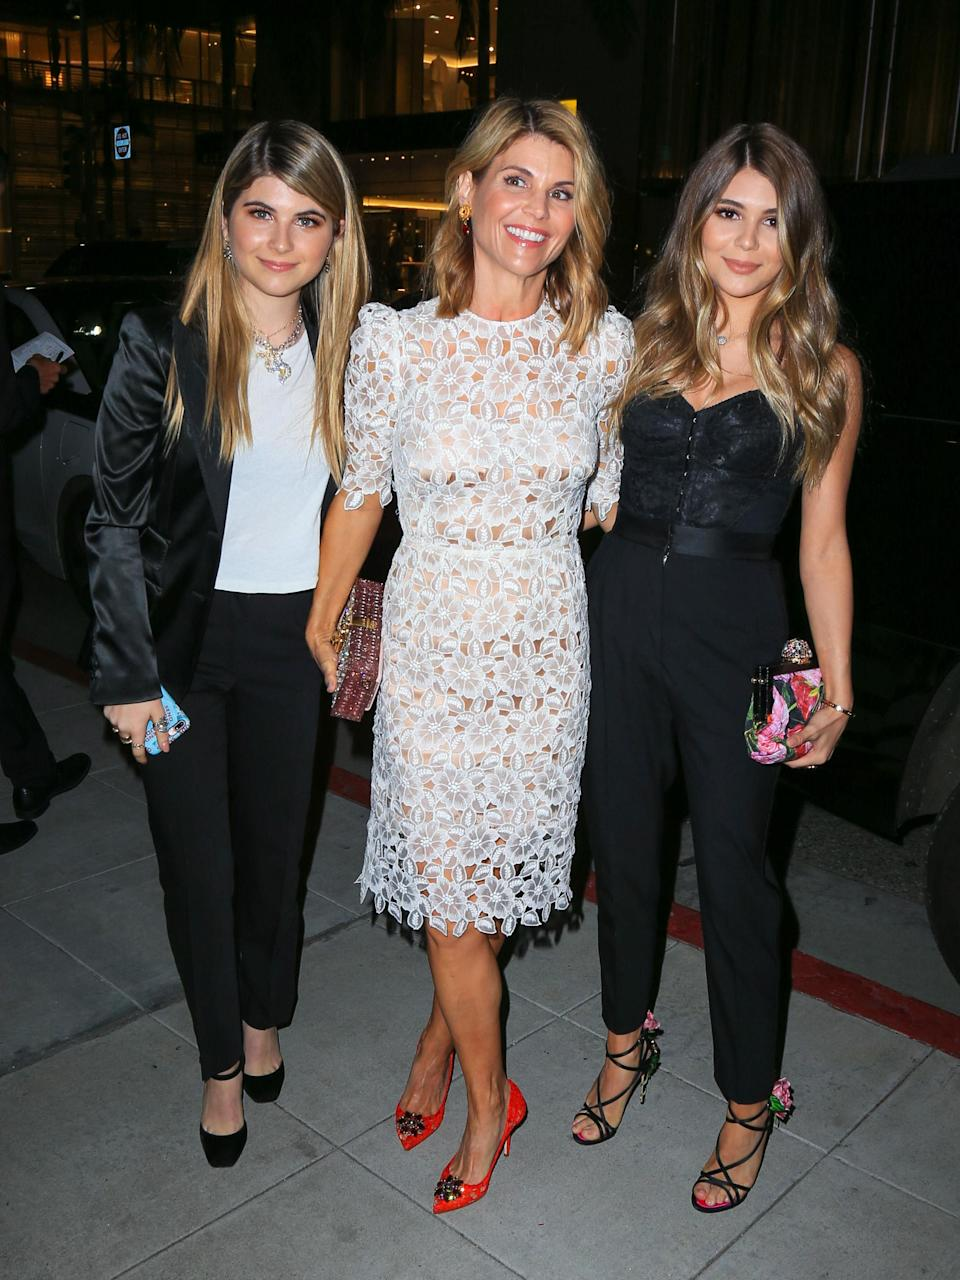 Lori Loughlin with her daughters Isabella and Olivia. (Photo: Getty Images)